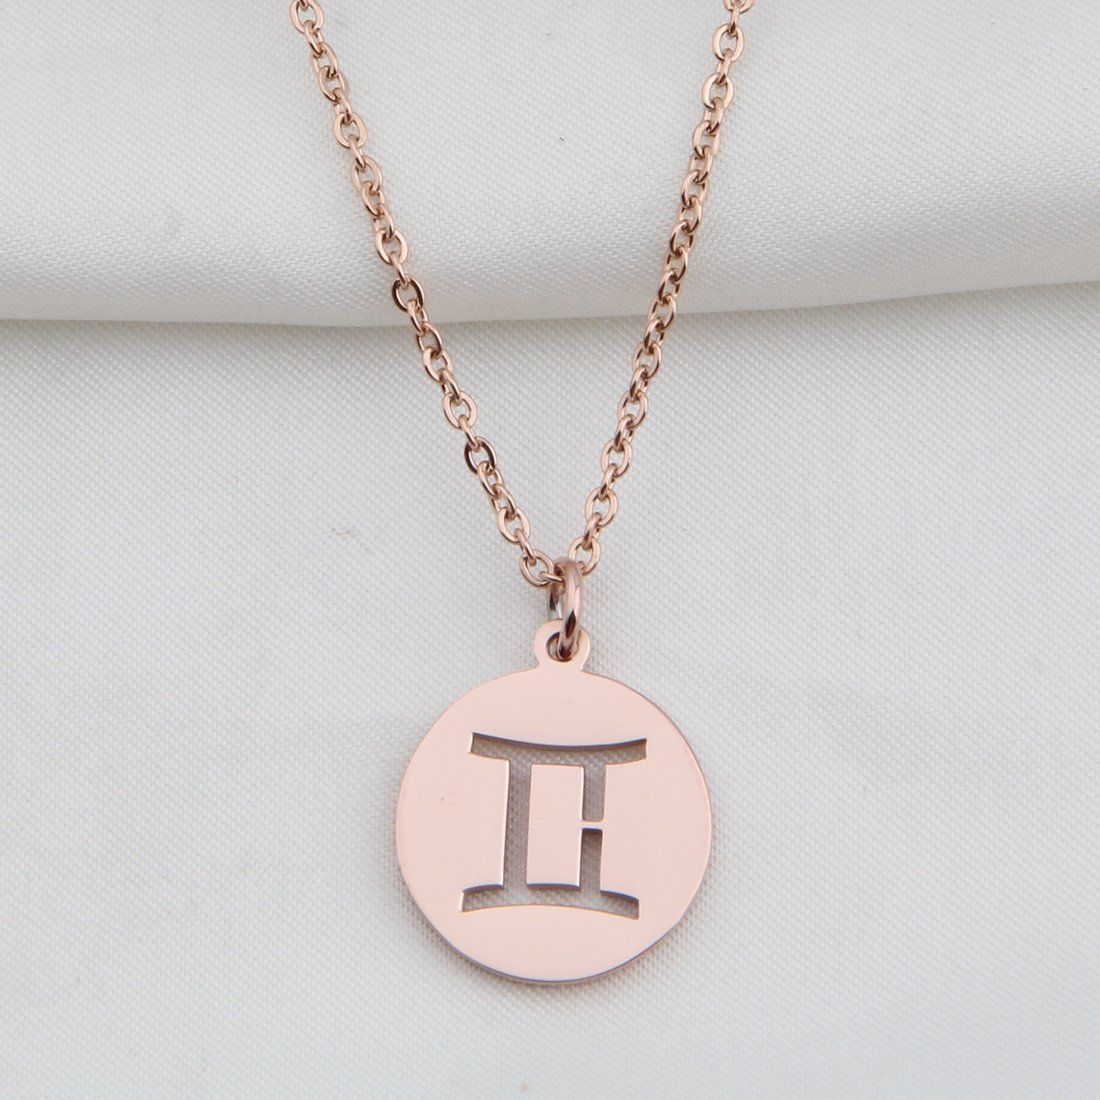 Zodiac pendant necklace rose gold disc horoscope necklace birthday